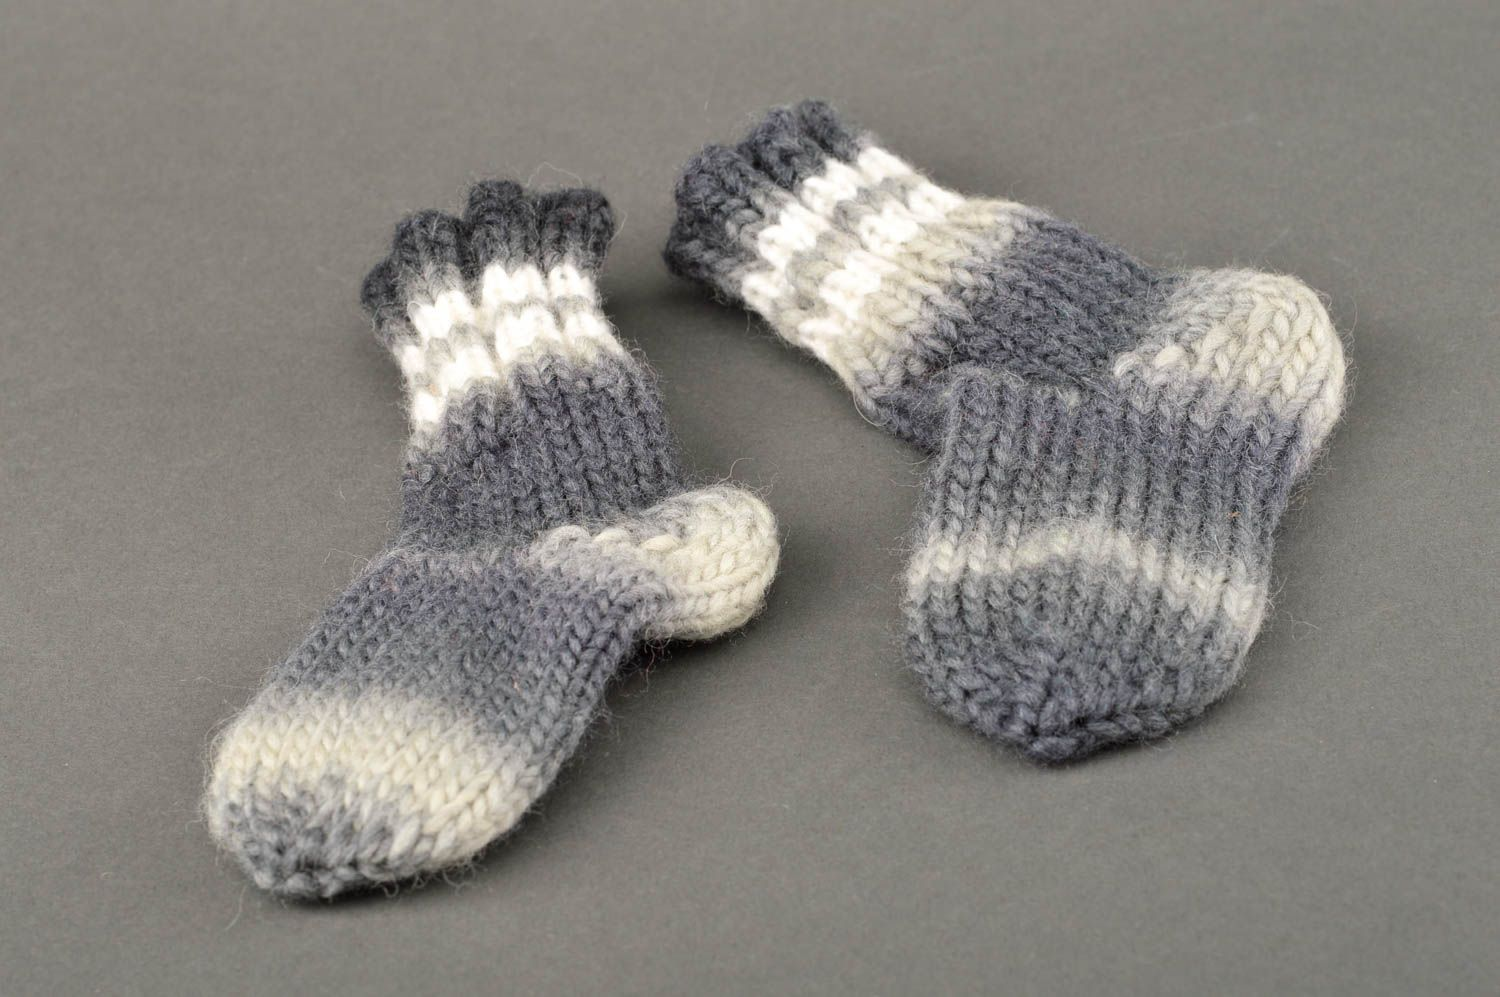 Warm winter socks hand-crocheted socks present for women present for friend - MADEheart.com